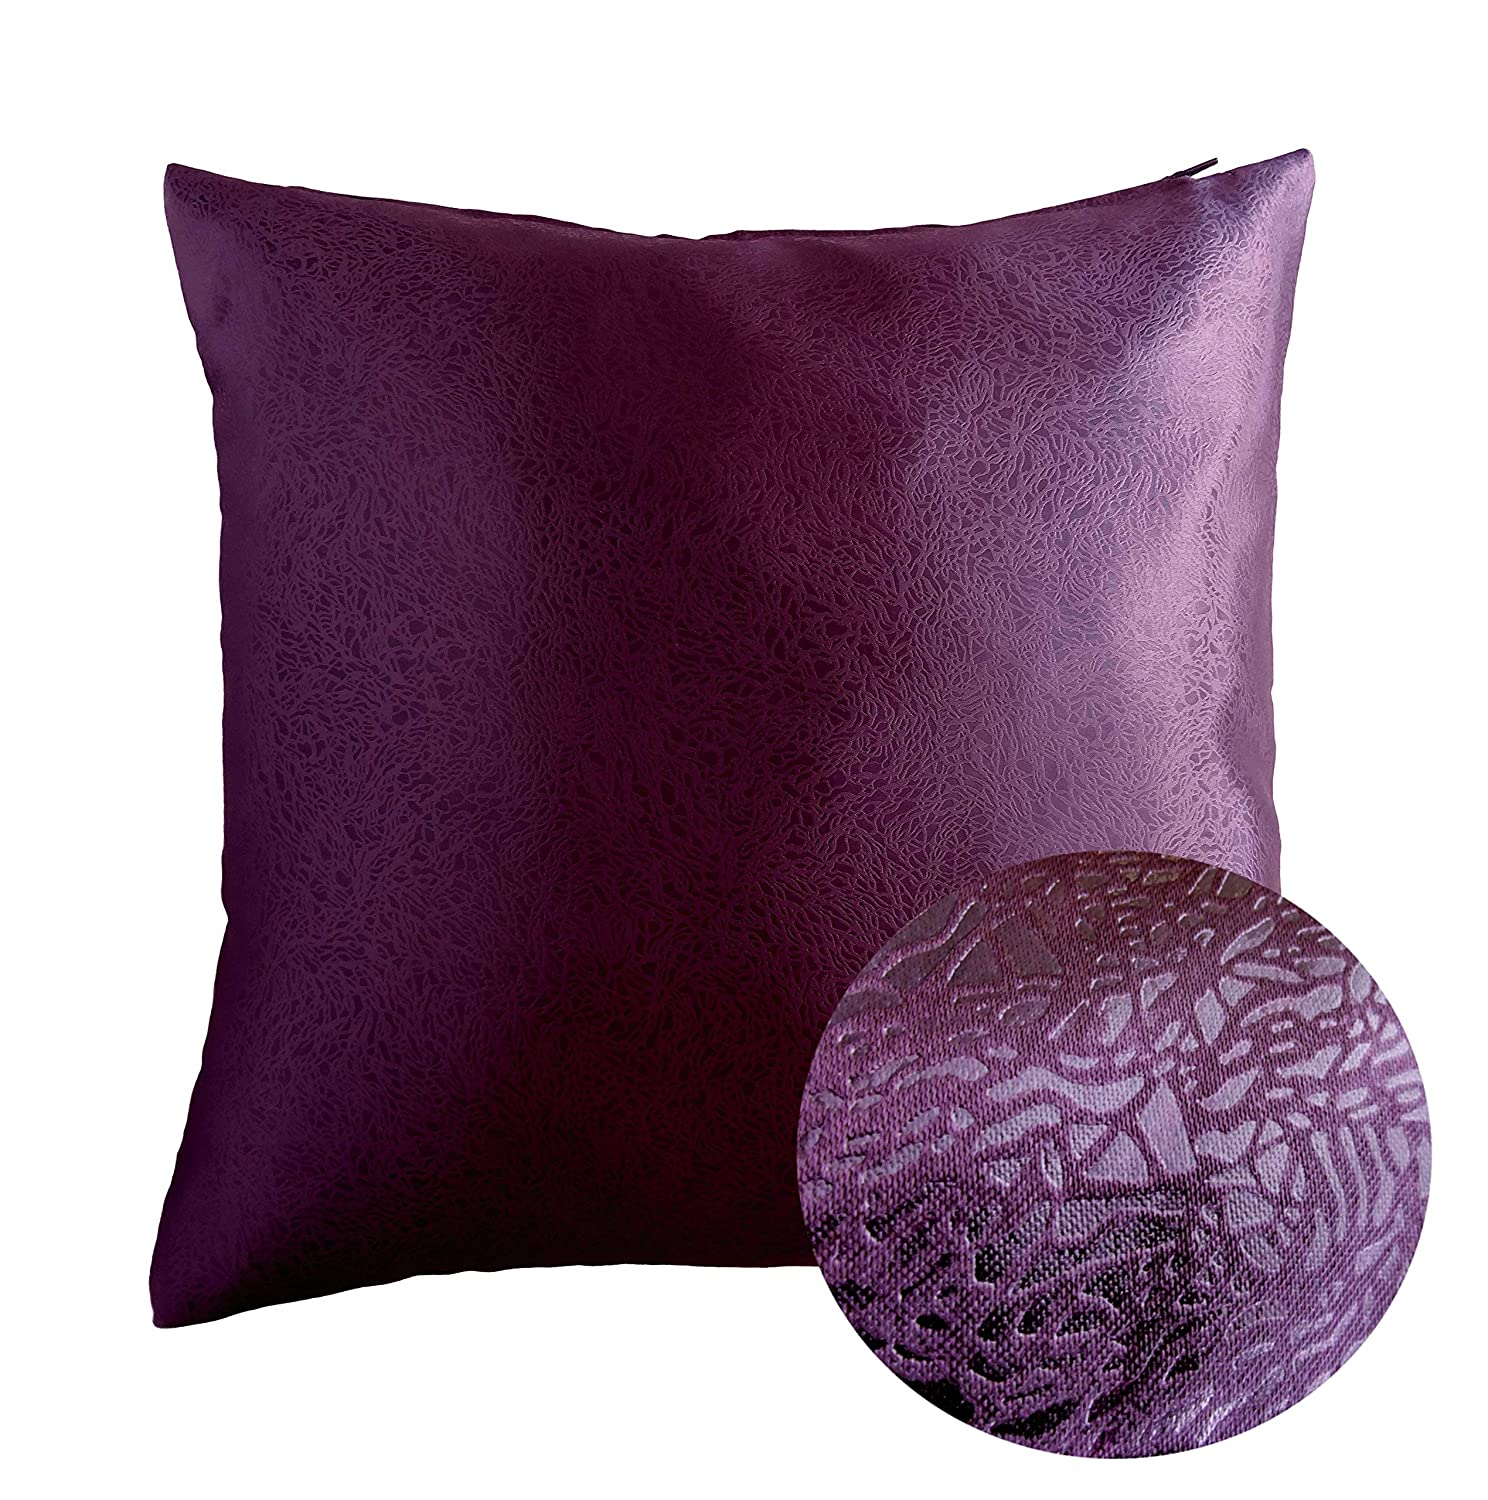 Deep Purple Decorative Throw Pillows 17/""